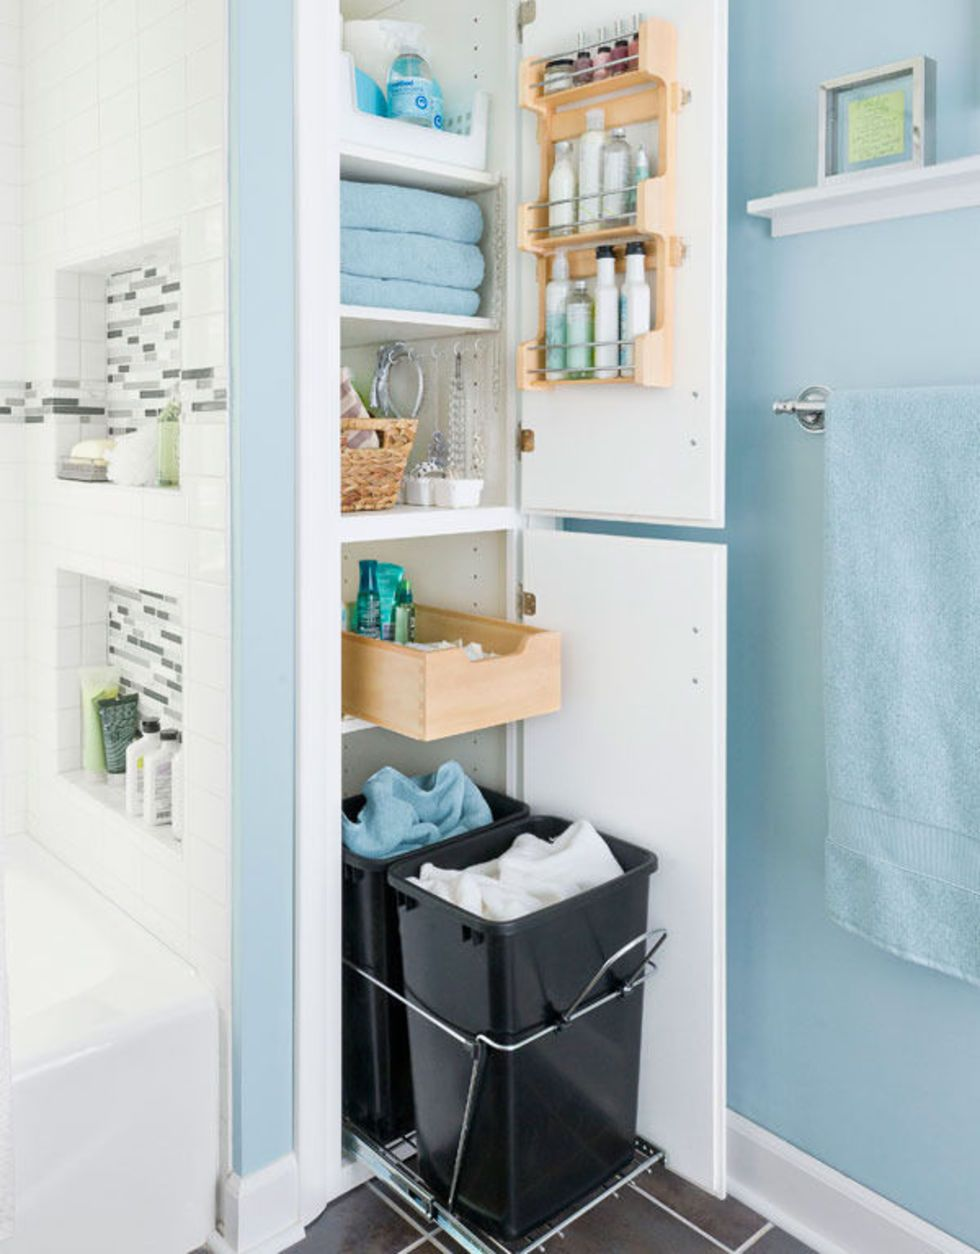 30 Best Bathroom Storage Ideas to Save Space | Bathroom storage ...